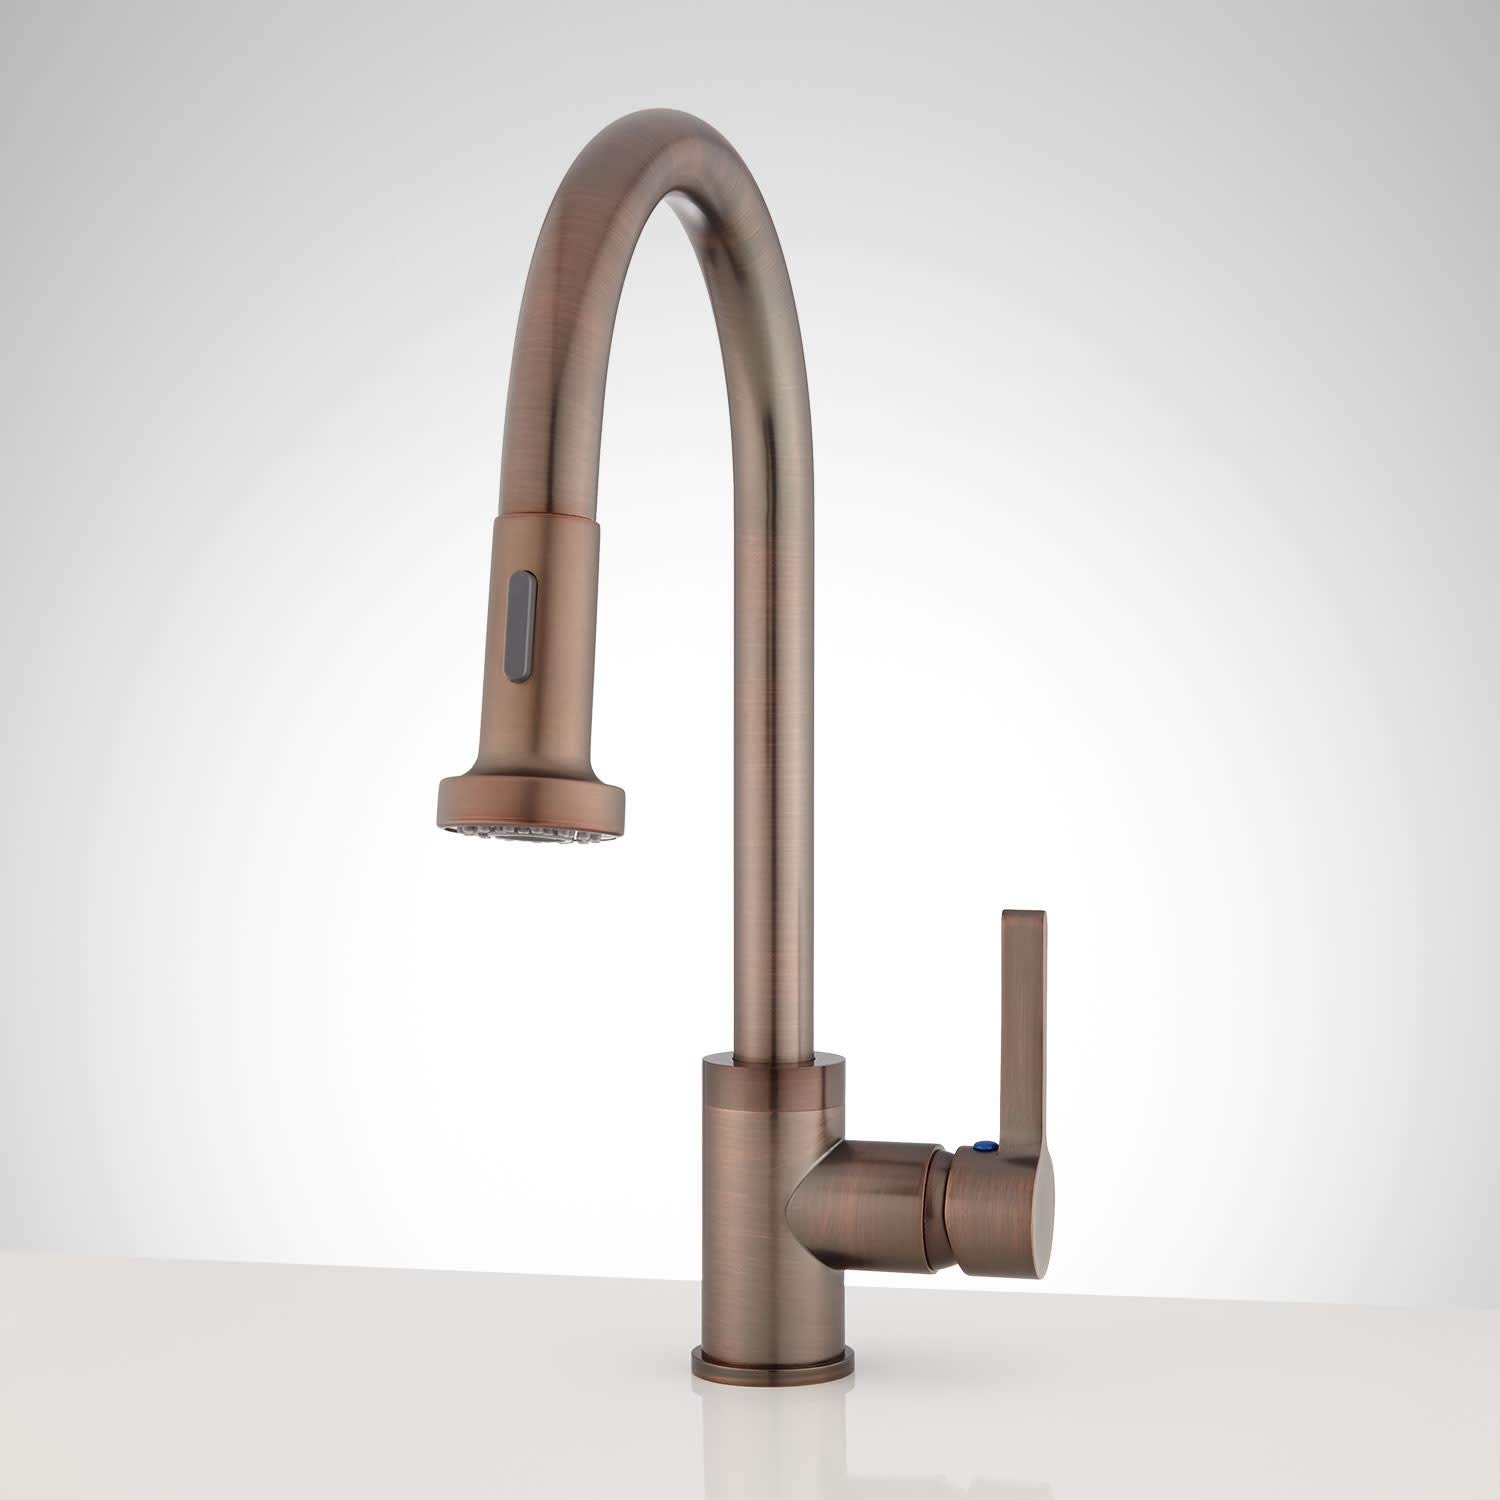 Signature Hardware 436899 Brusco 1.8 GPM Single Hole Pull-Down Kitchen Faucet